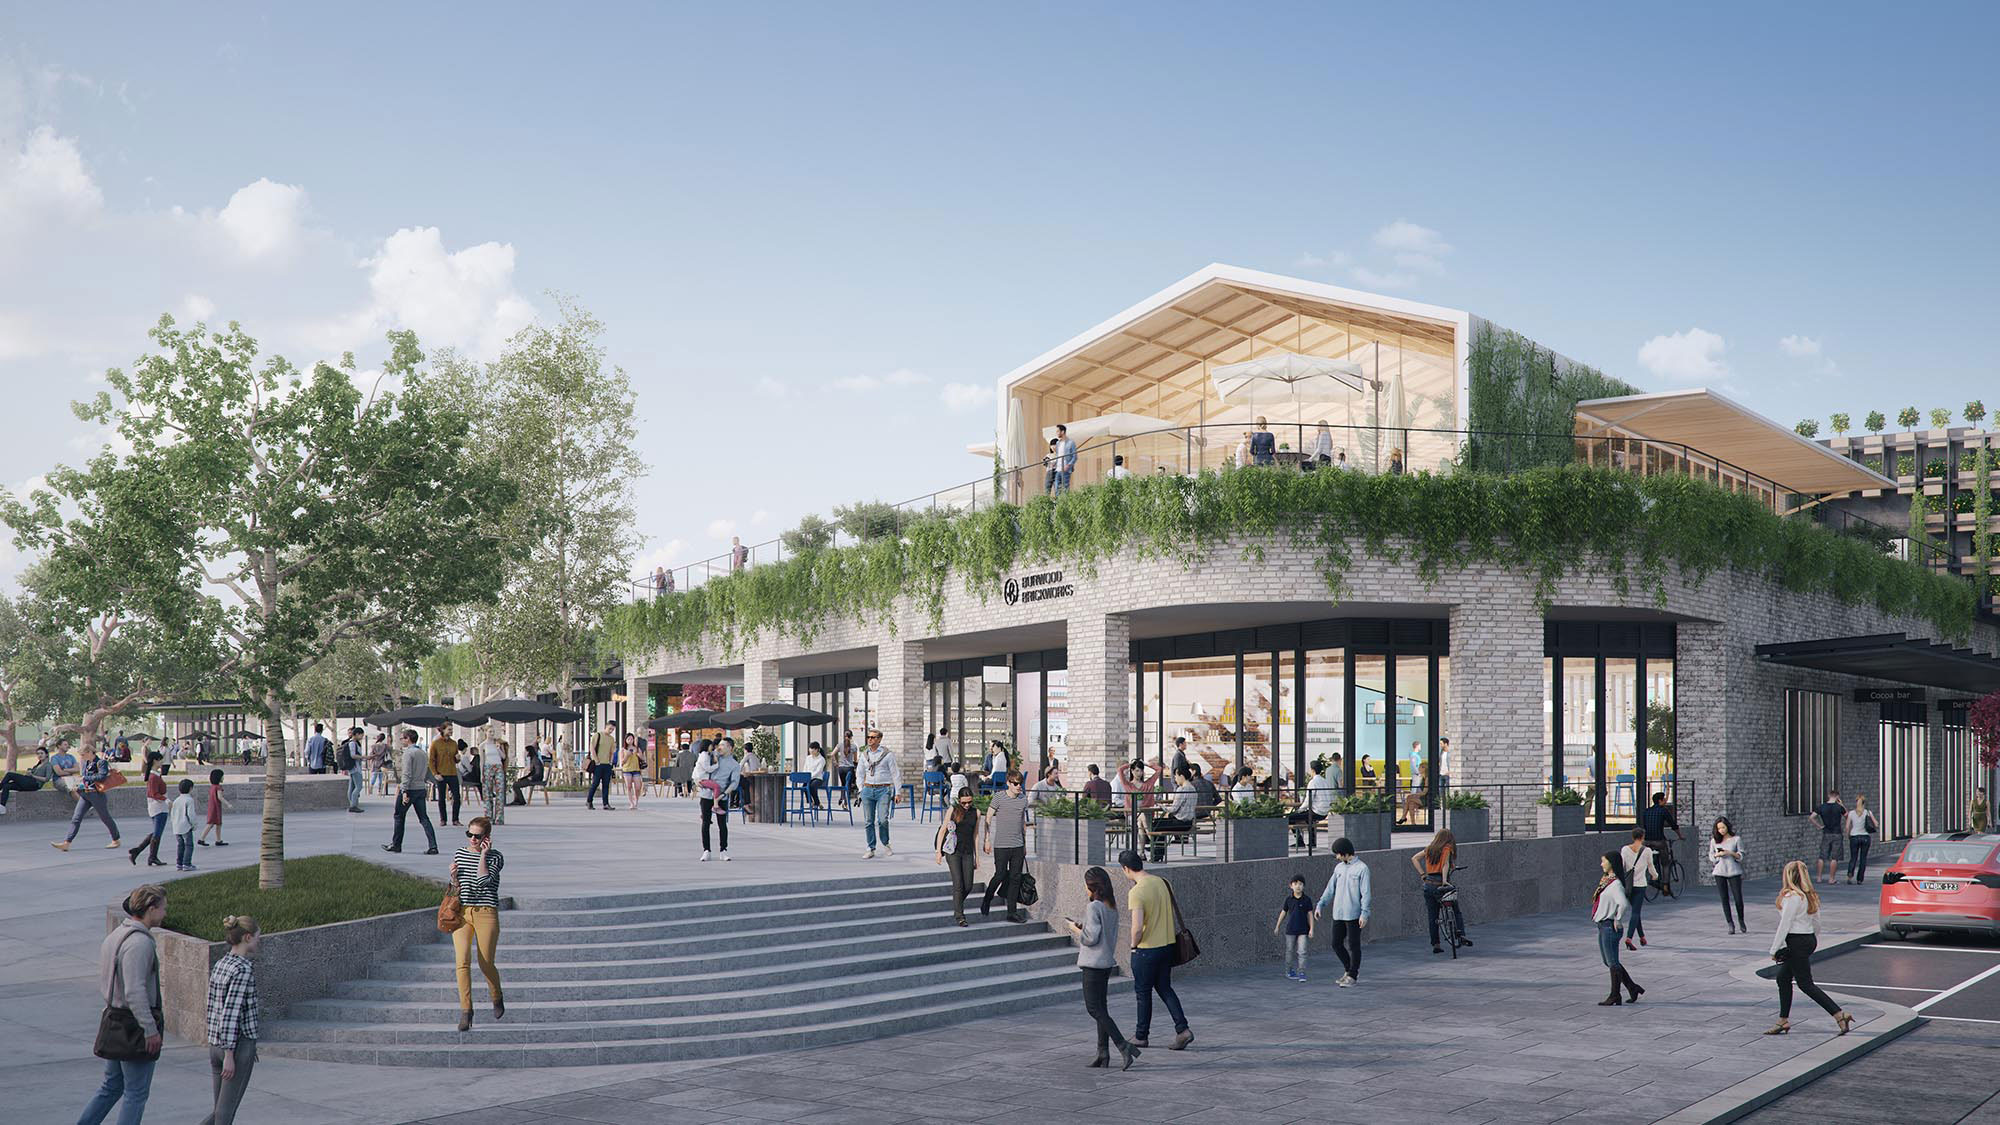 Burwood Brickworks will be the world's most sustainable shopping centre